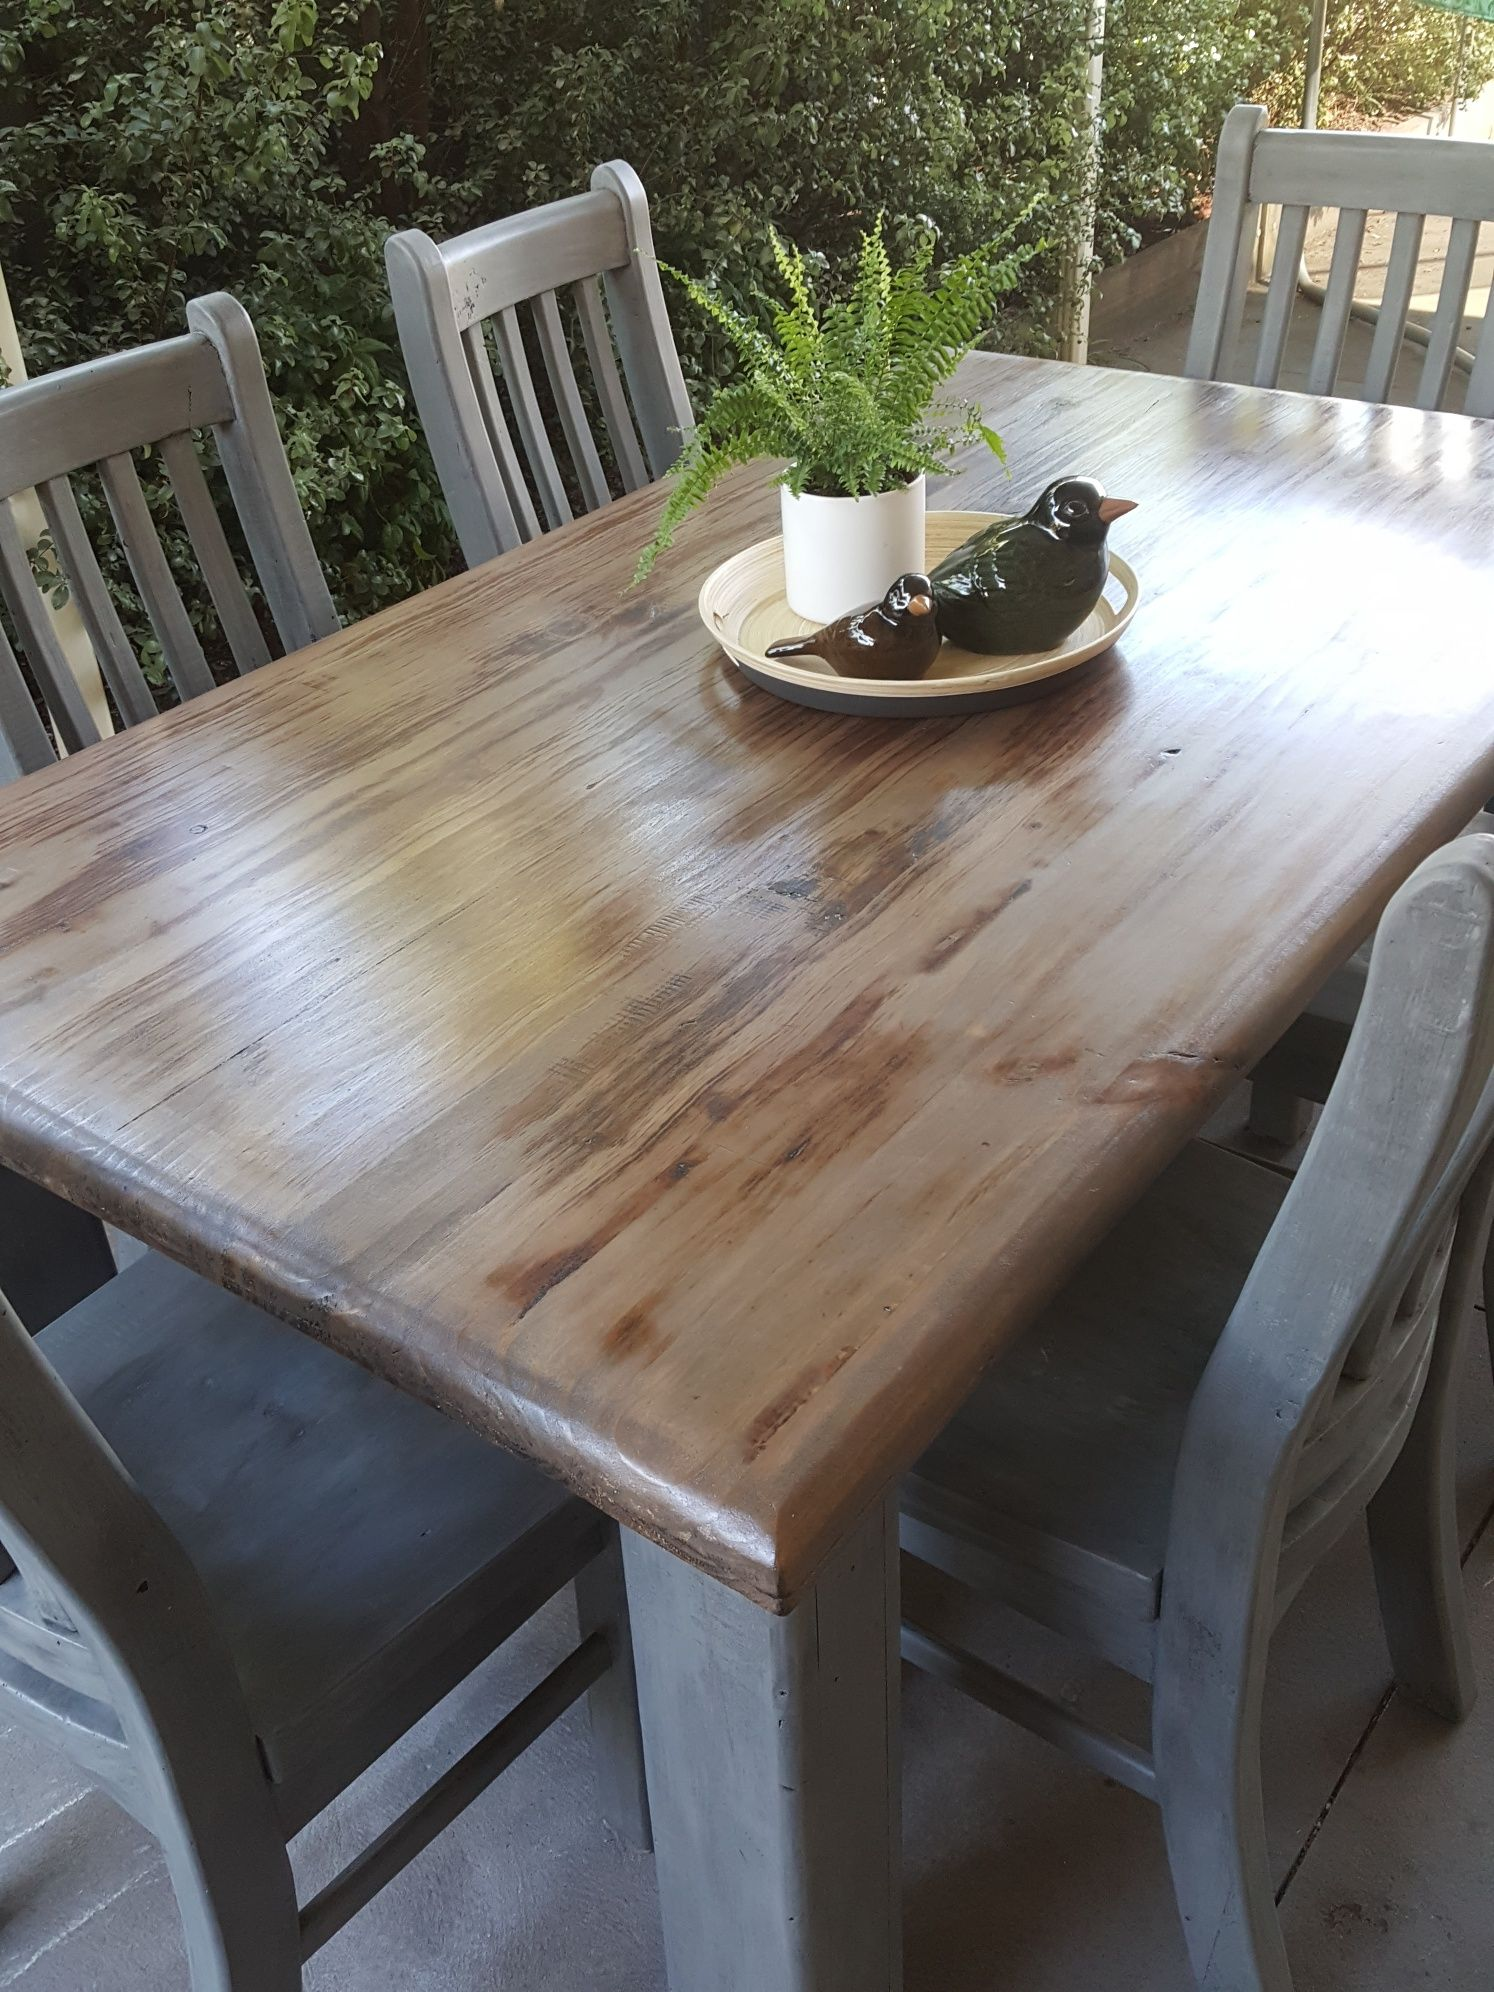 Upcycled Dining Table Chairs Dining Table Painted Dining Table Chalk Paint Dining Table